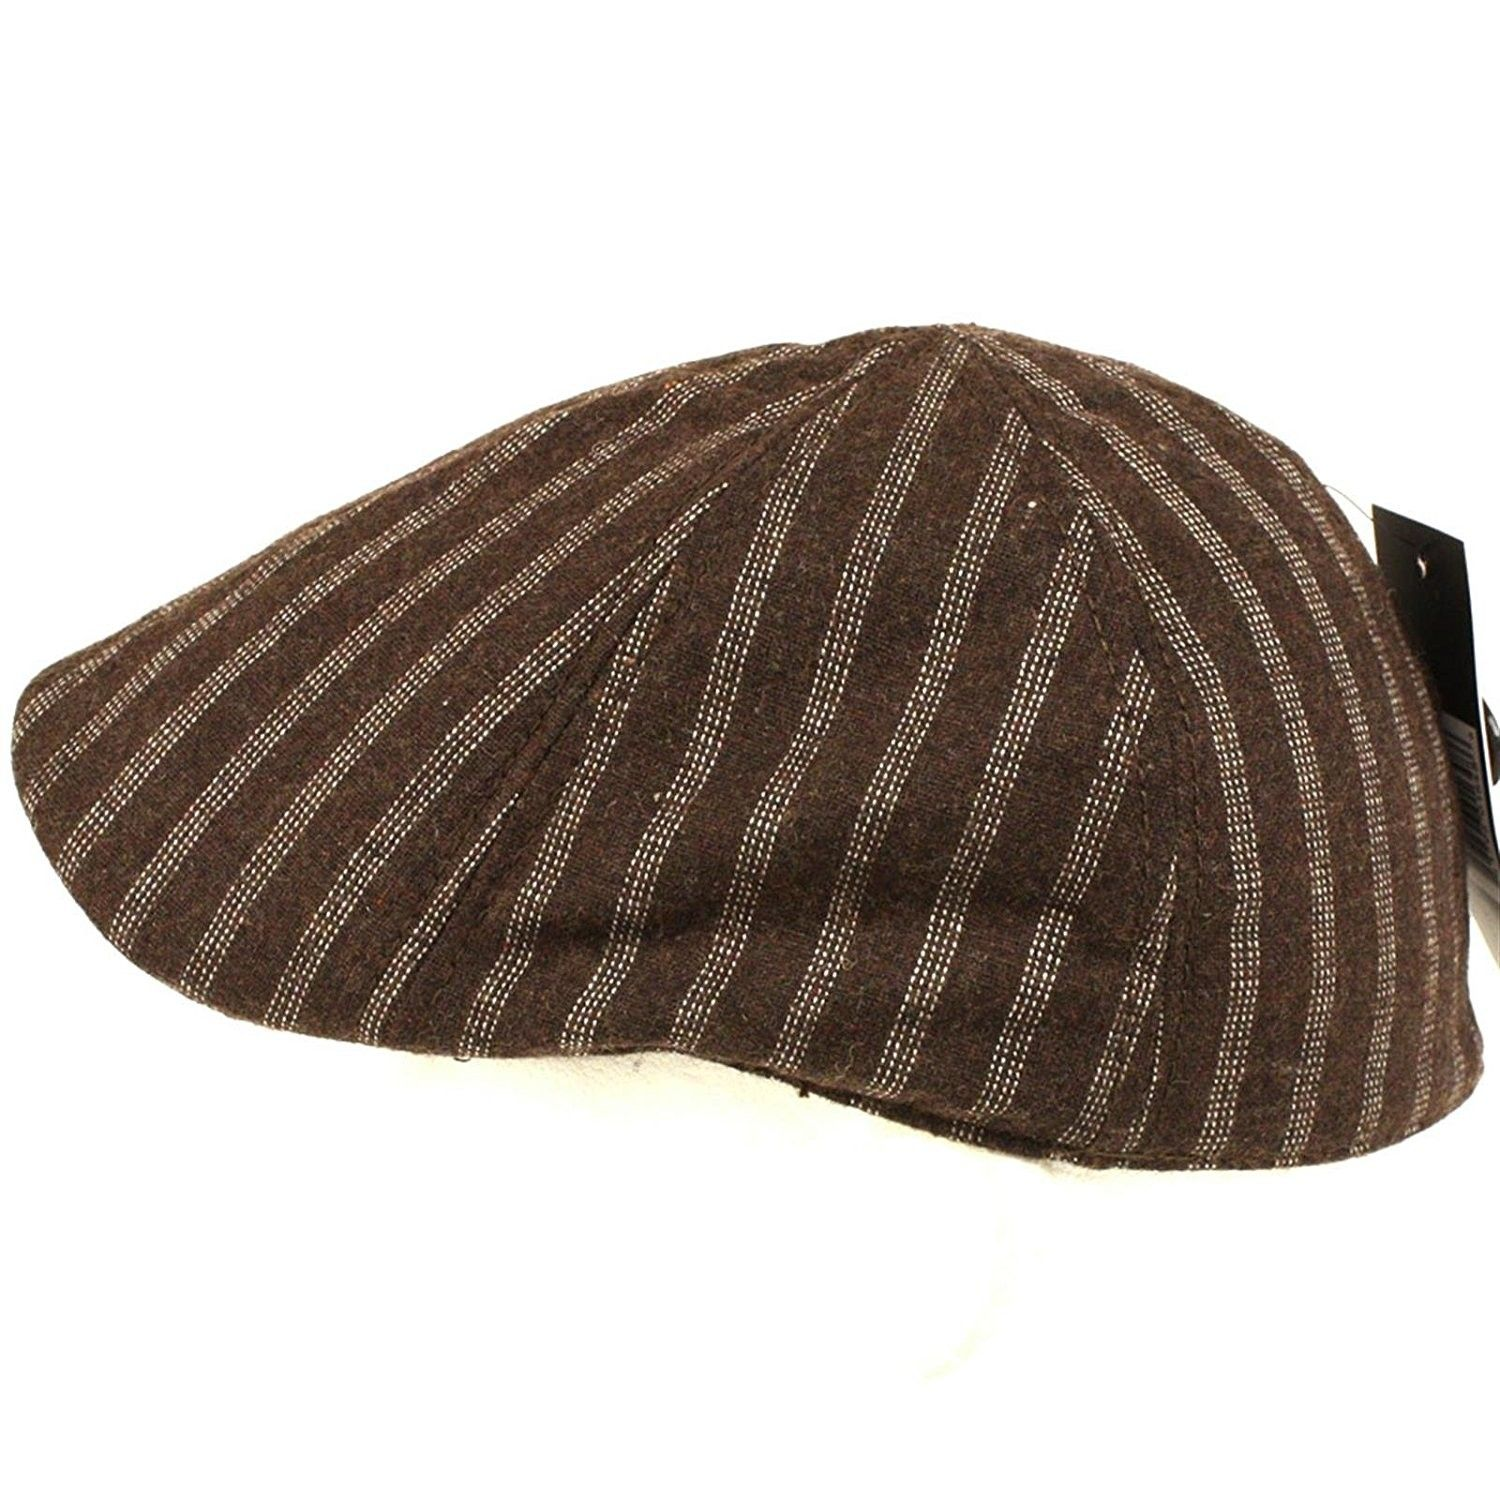 7ed14291541 Wool Pinstripe 6 Panel Duck Bill Ivy Cap Hat - Brown - CP115BPMITR - Hats    Caps